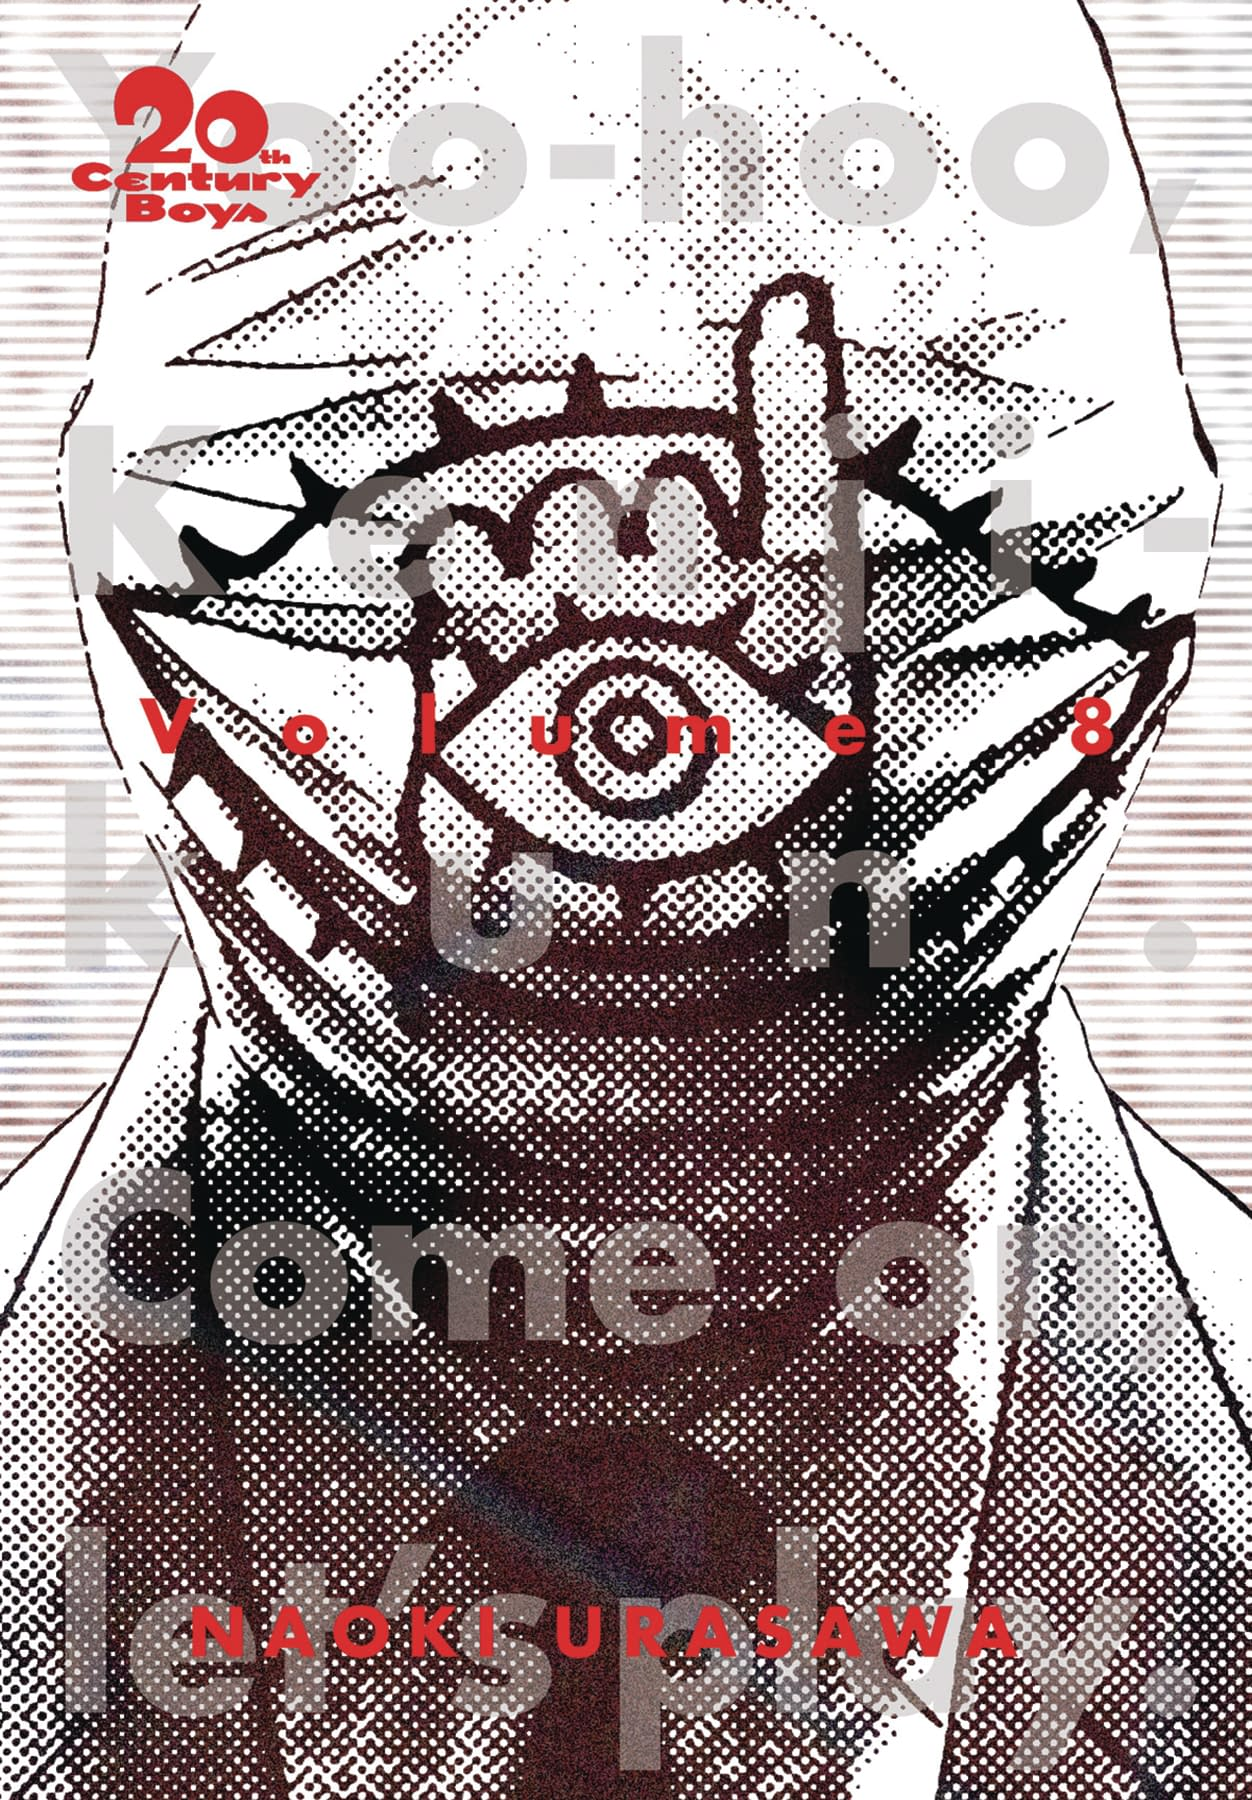 20TH CENTURY BOYS TP VOL 08 PERFECT ED URASAWA